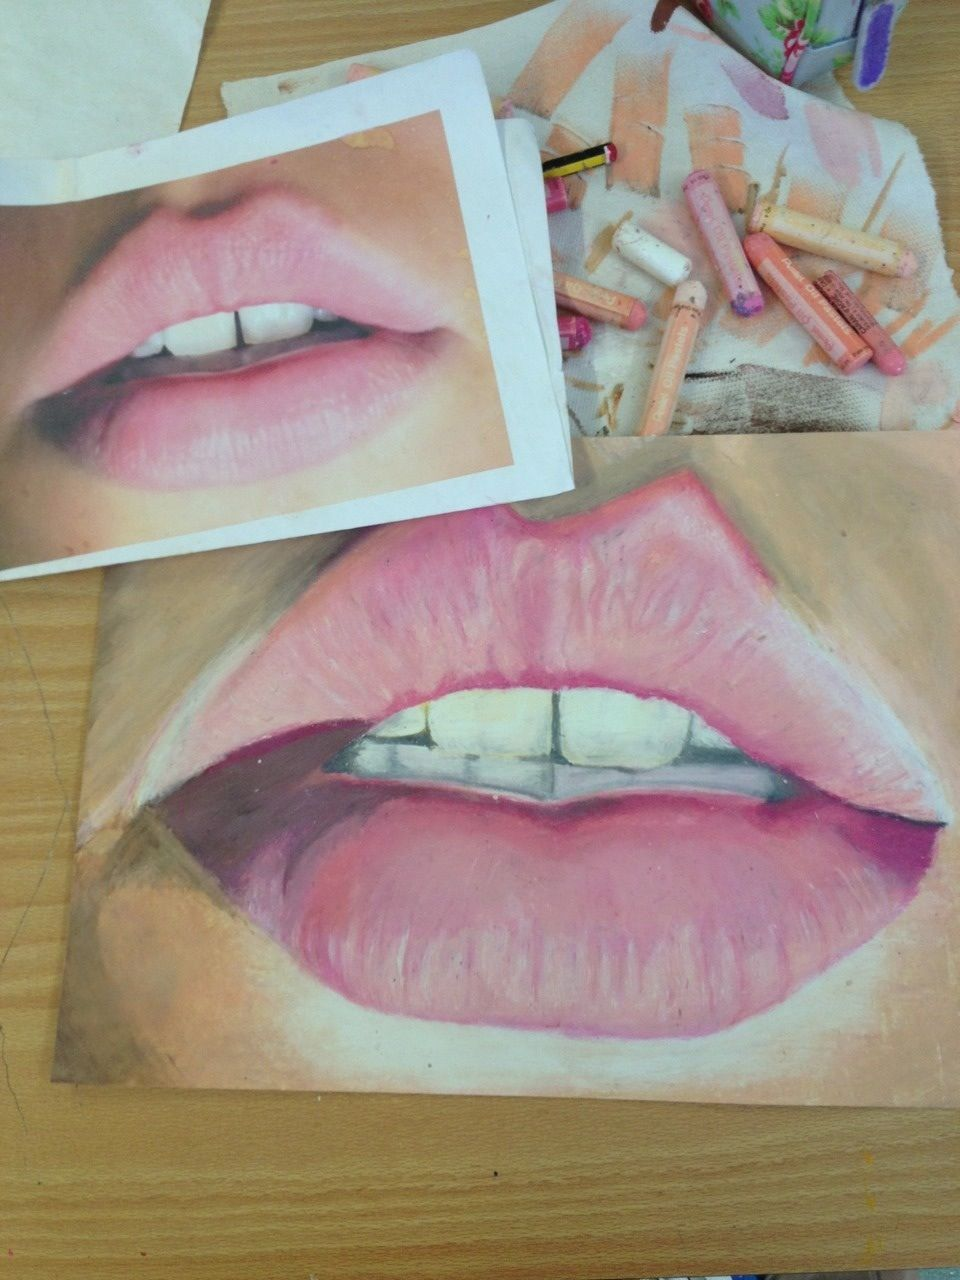 Oil pastels can make drawings look so realistic and alive when